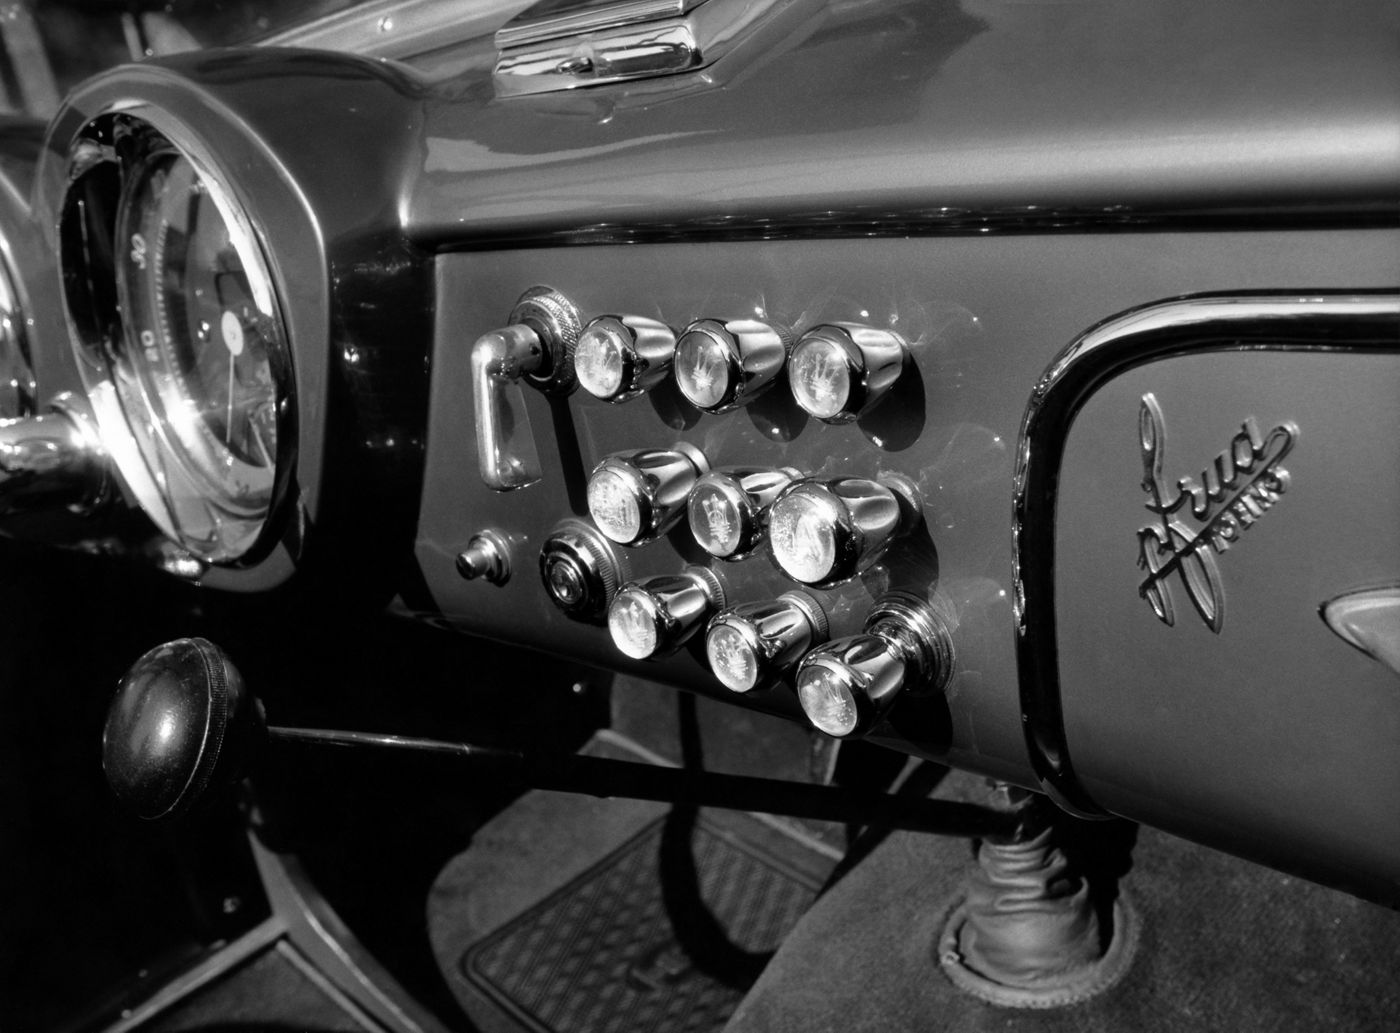 1950 Maserati A6G 2000 - interior details of the classic car model